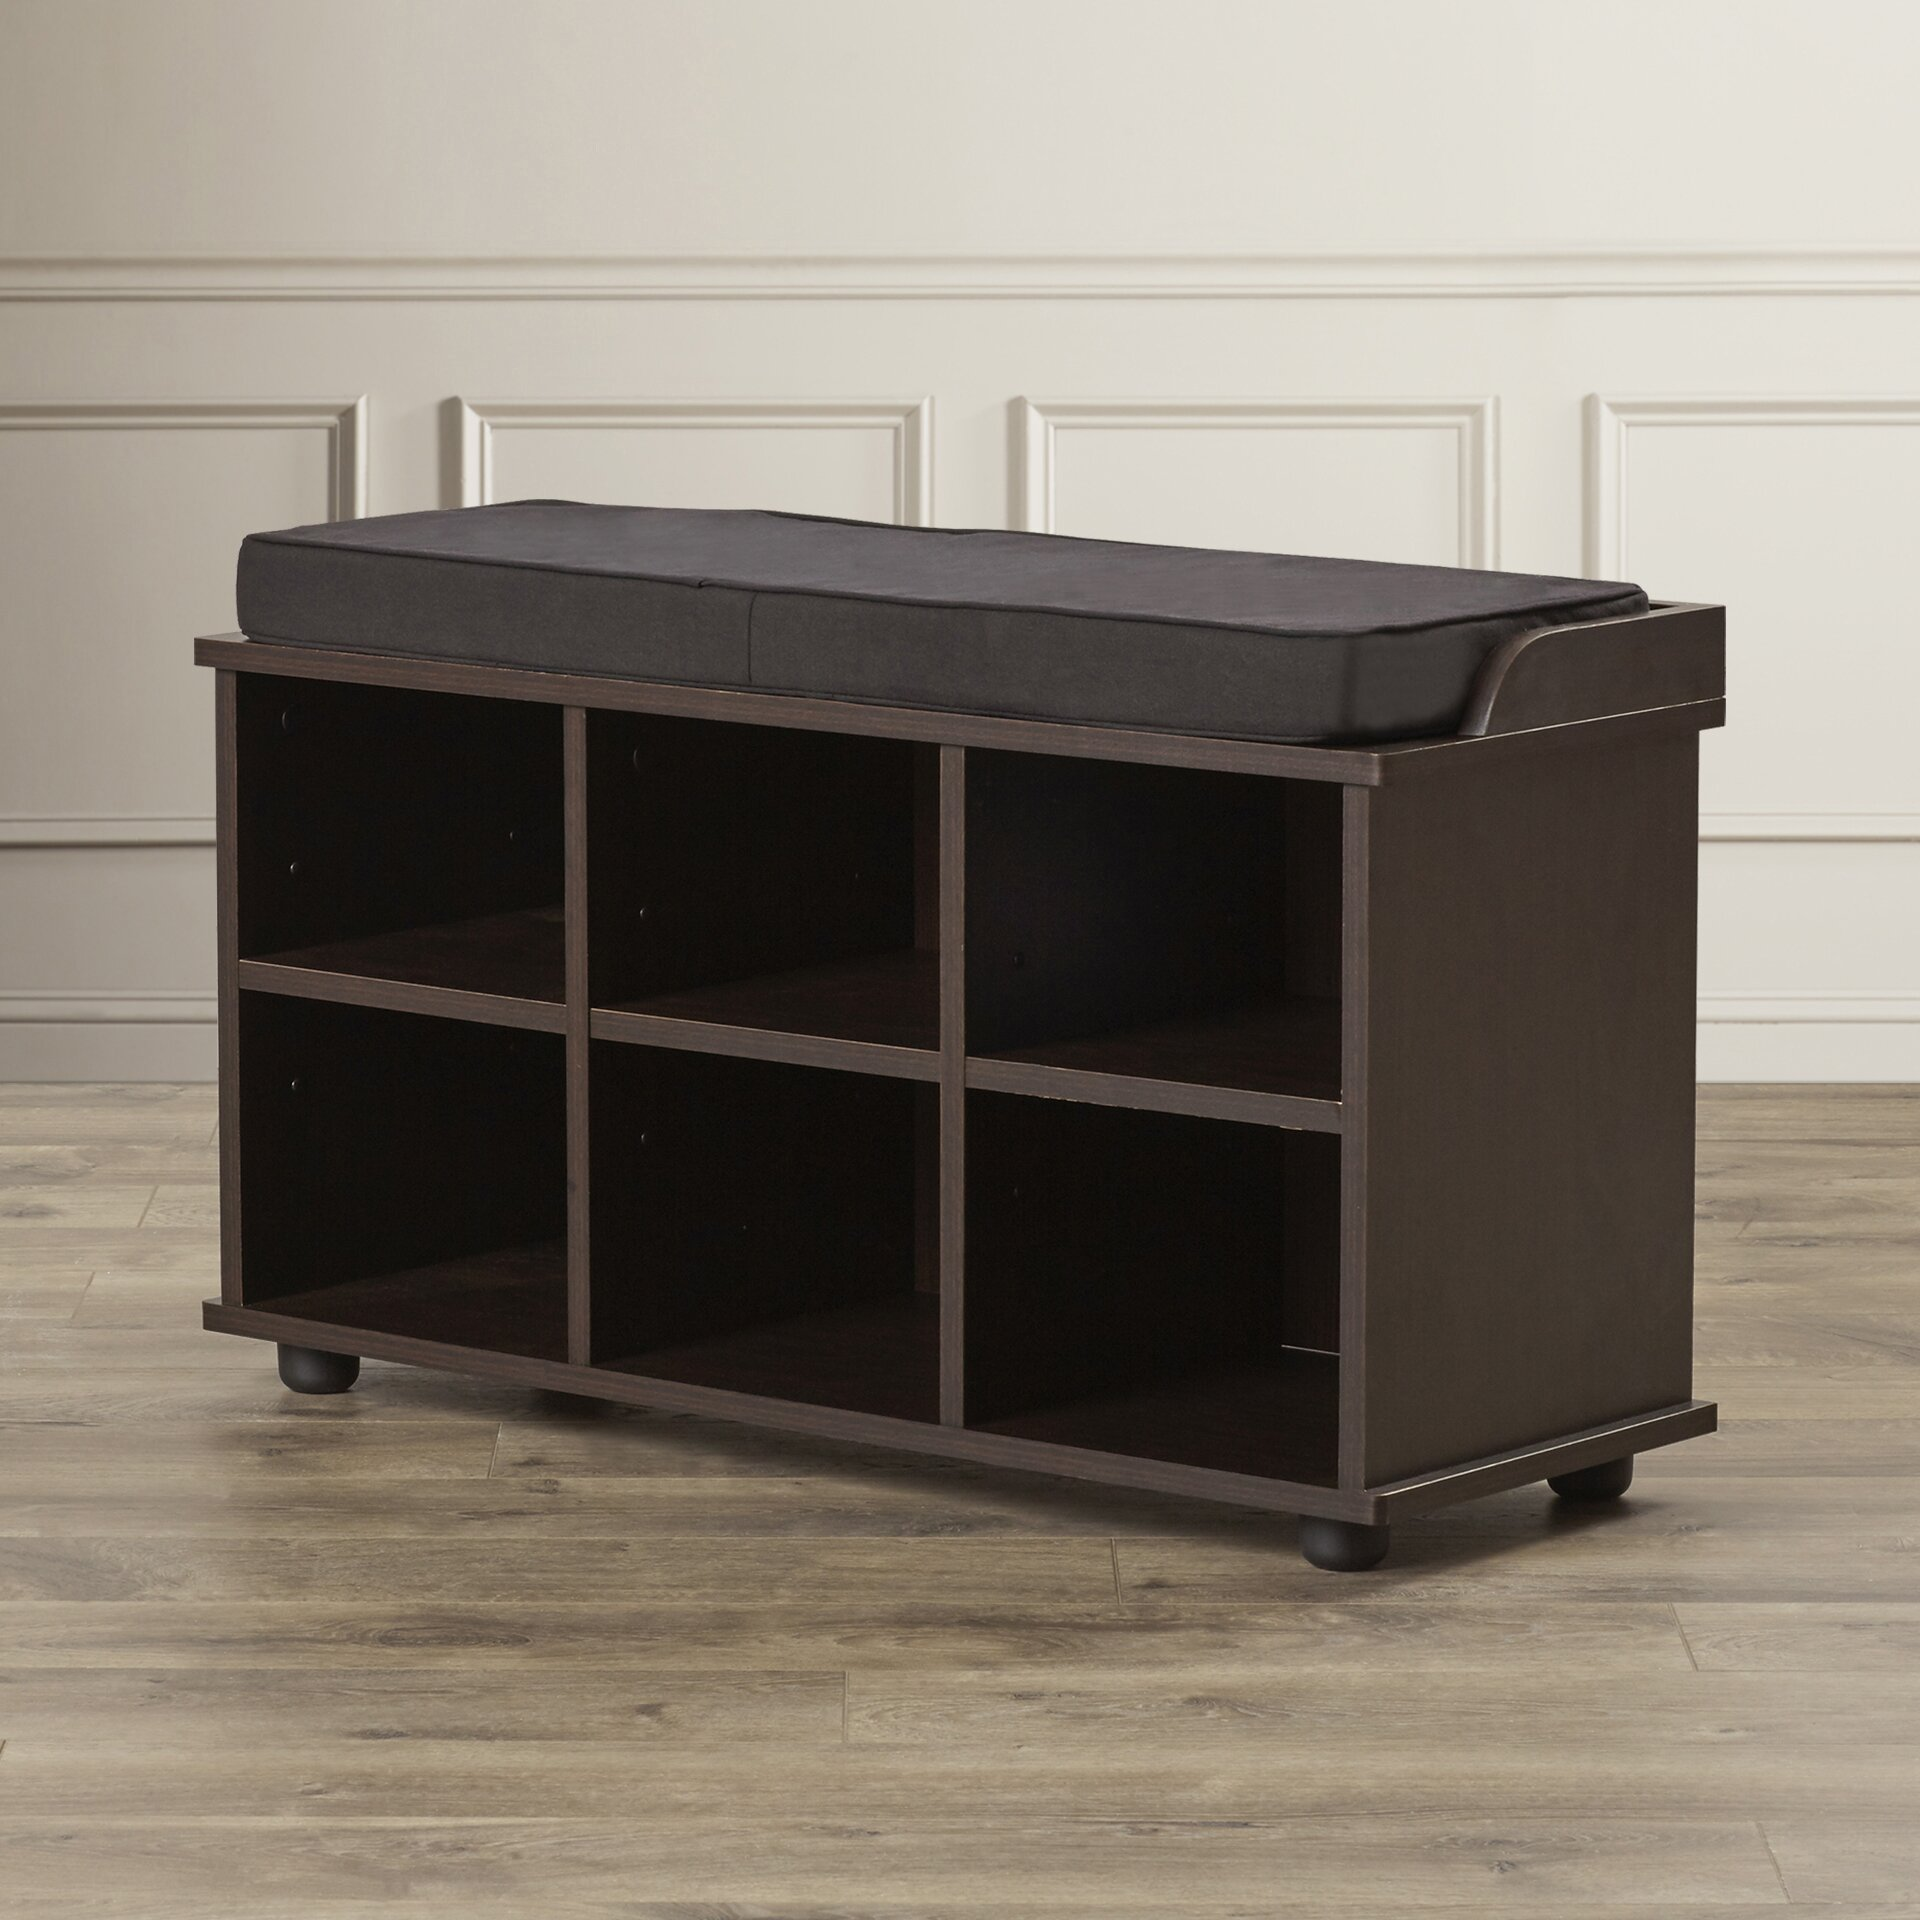 Charlton Home 6 Cubby Storage Entryway Bench Reviews